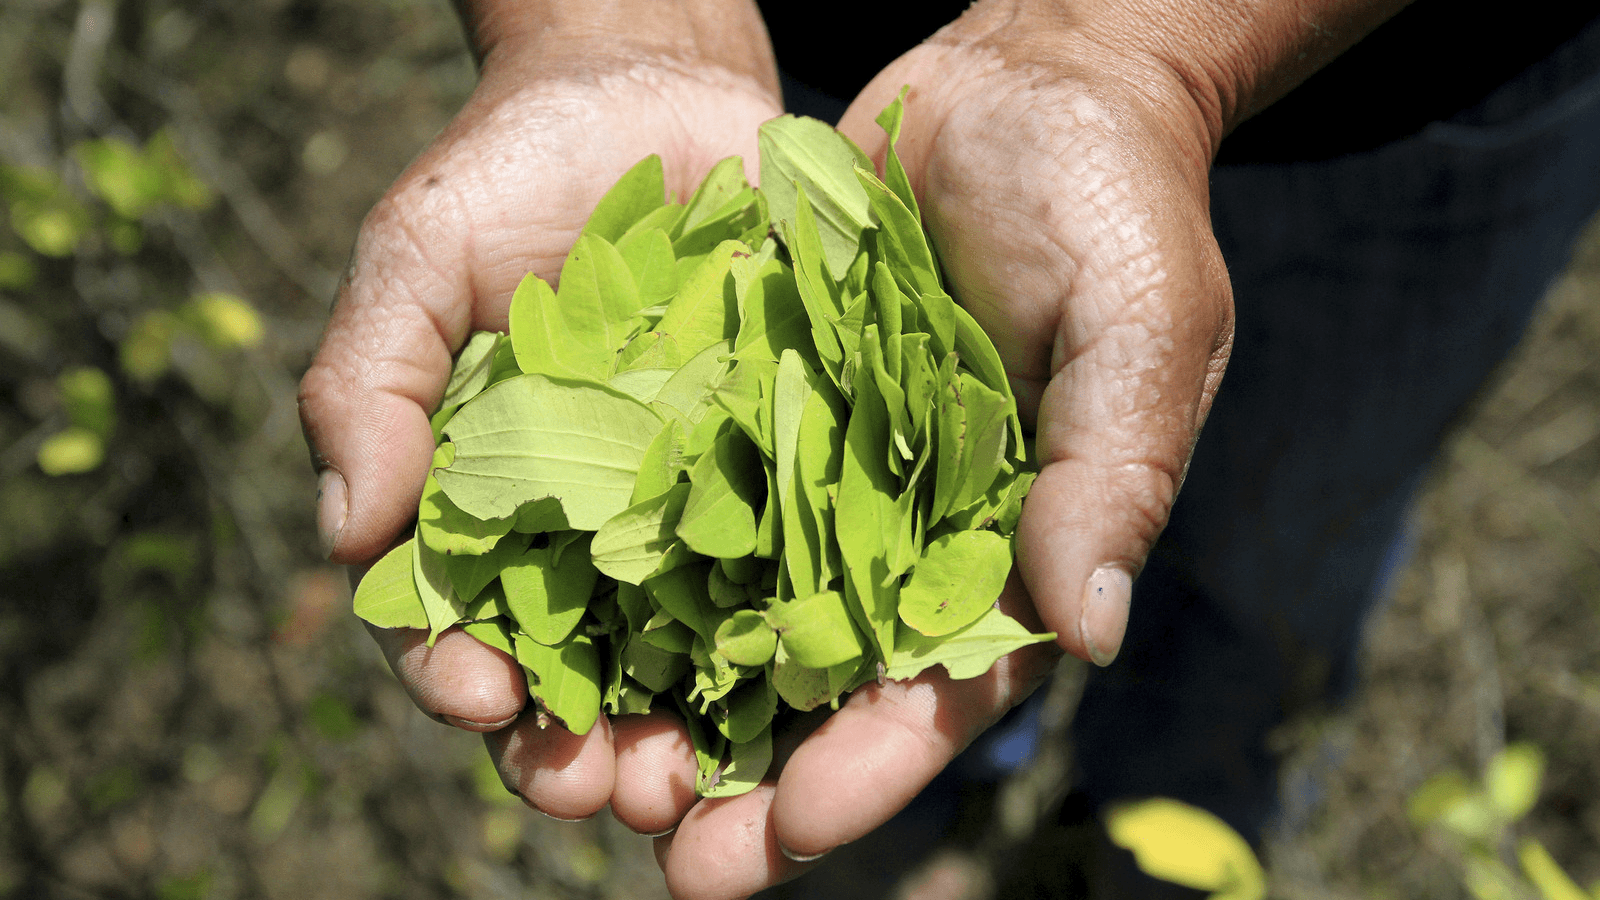 coca leaves in a man's hands in Colombia